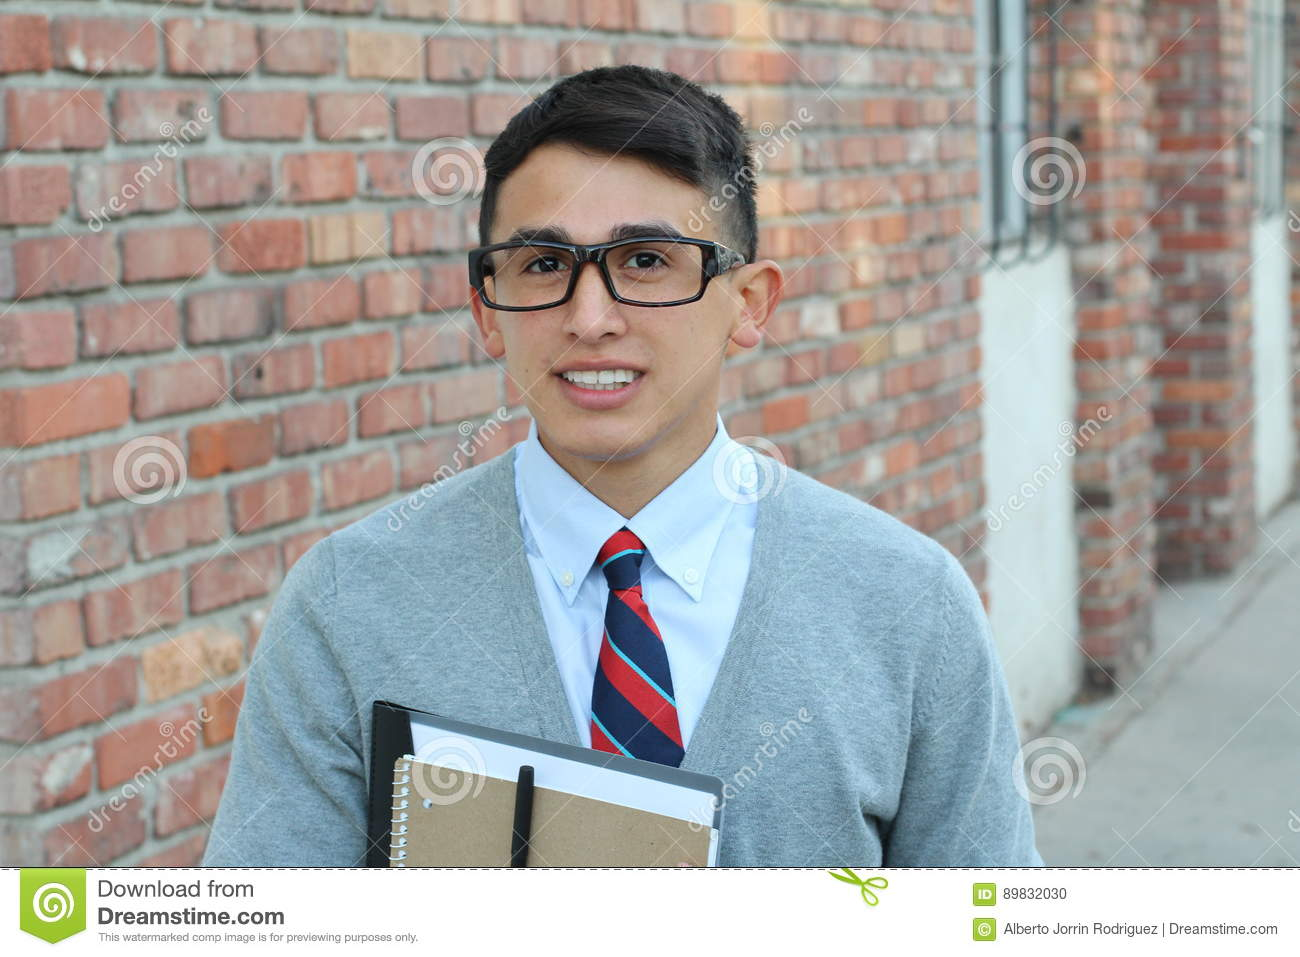 Cute teenager boy in formal high school uniform and glasses smiling